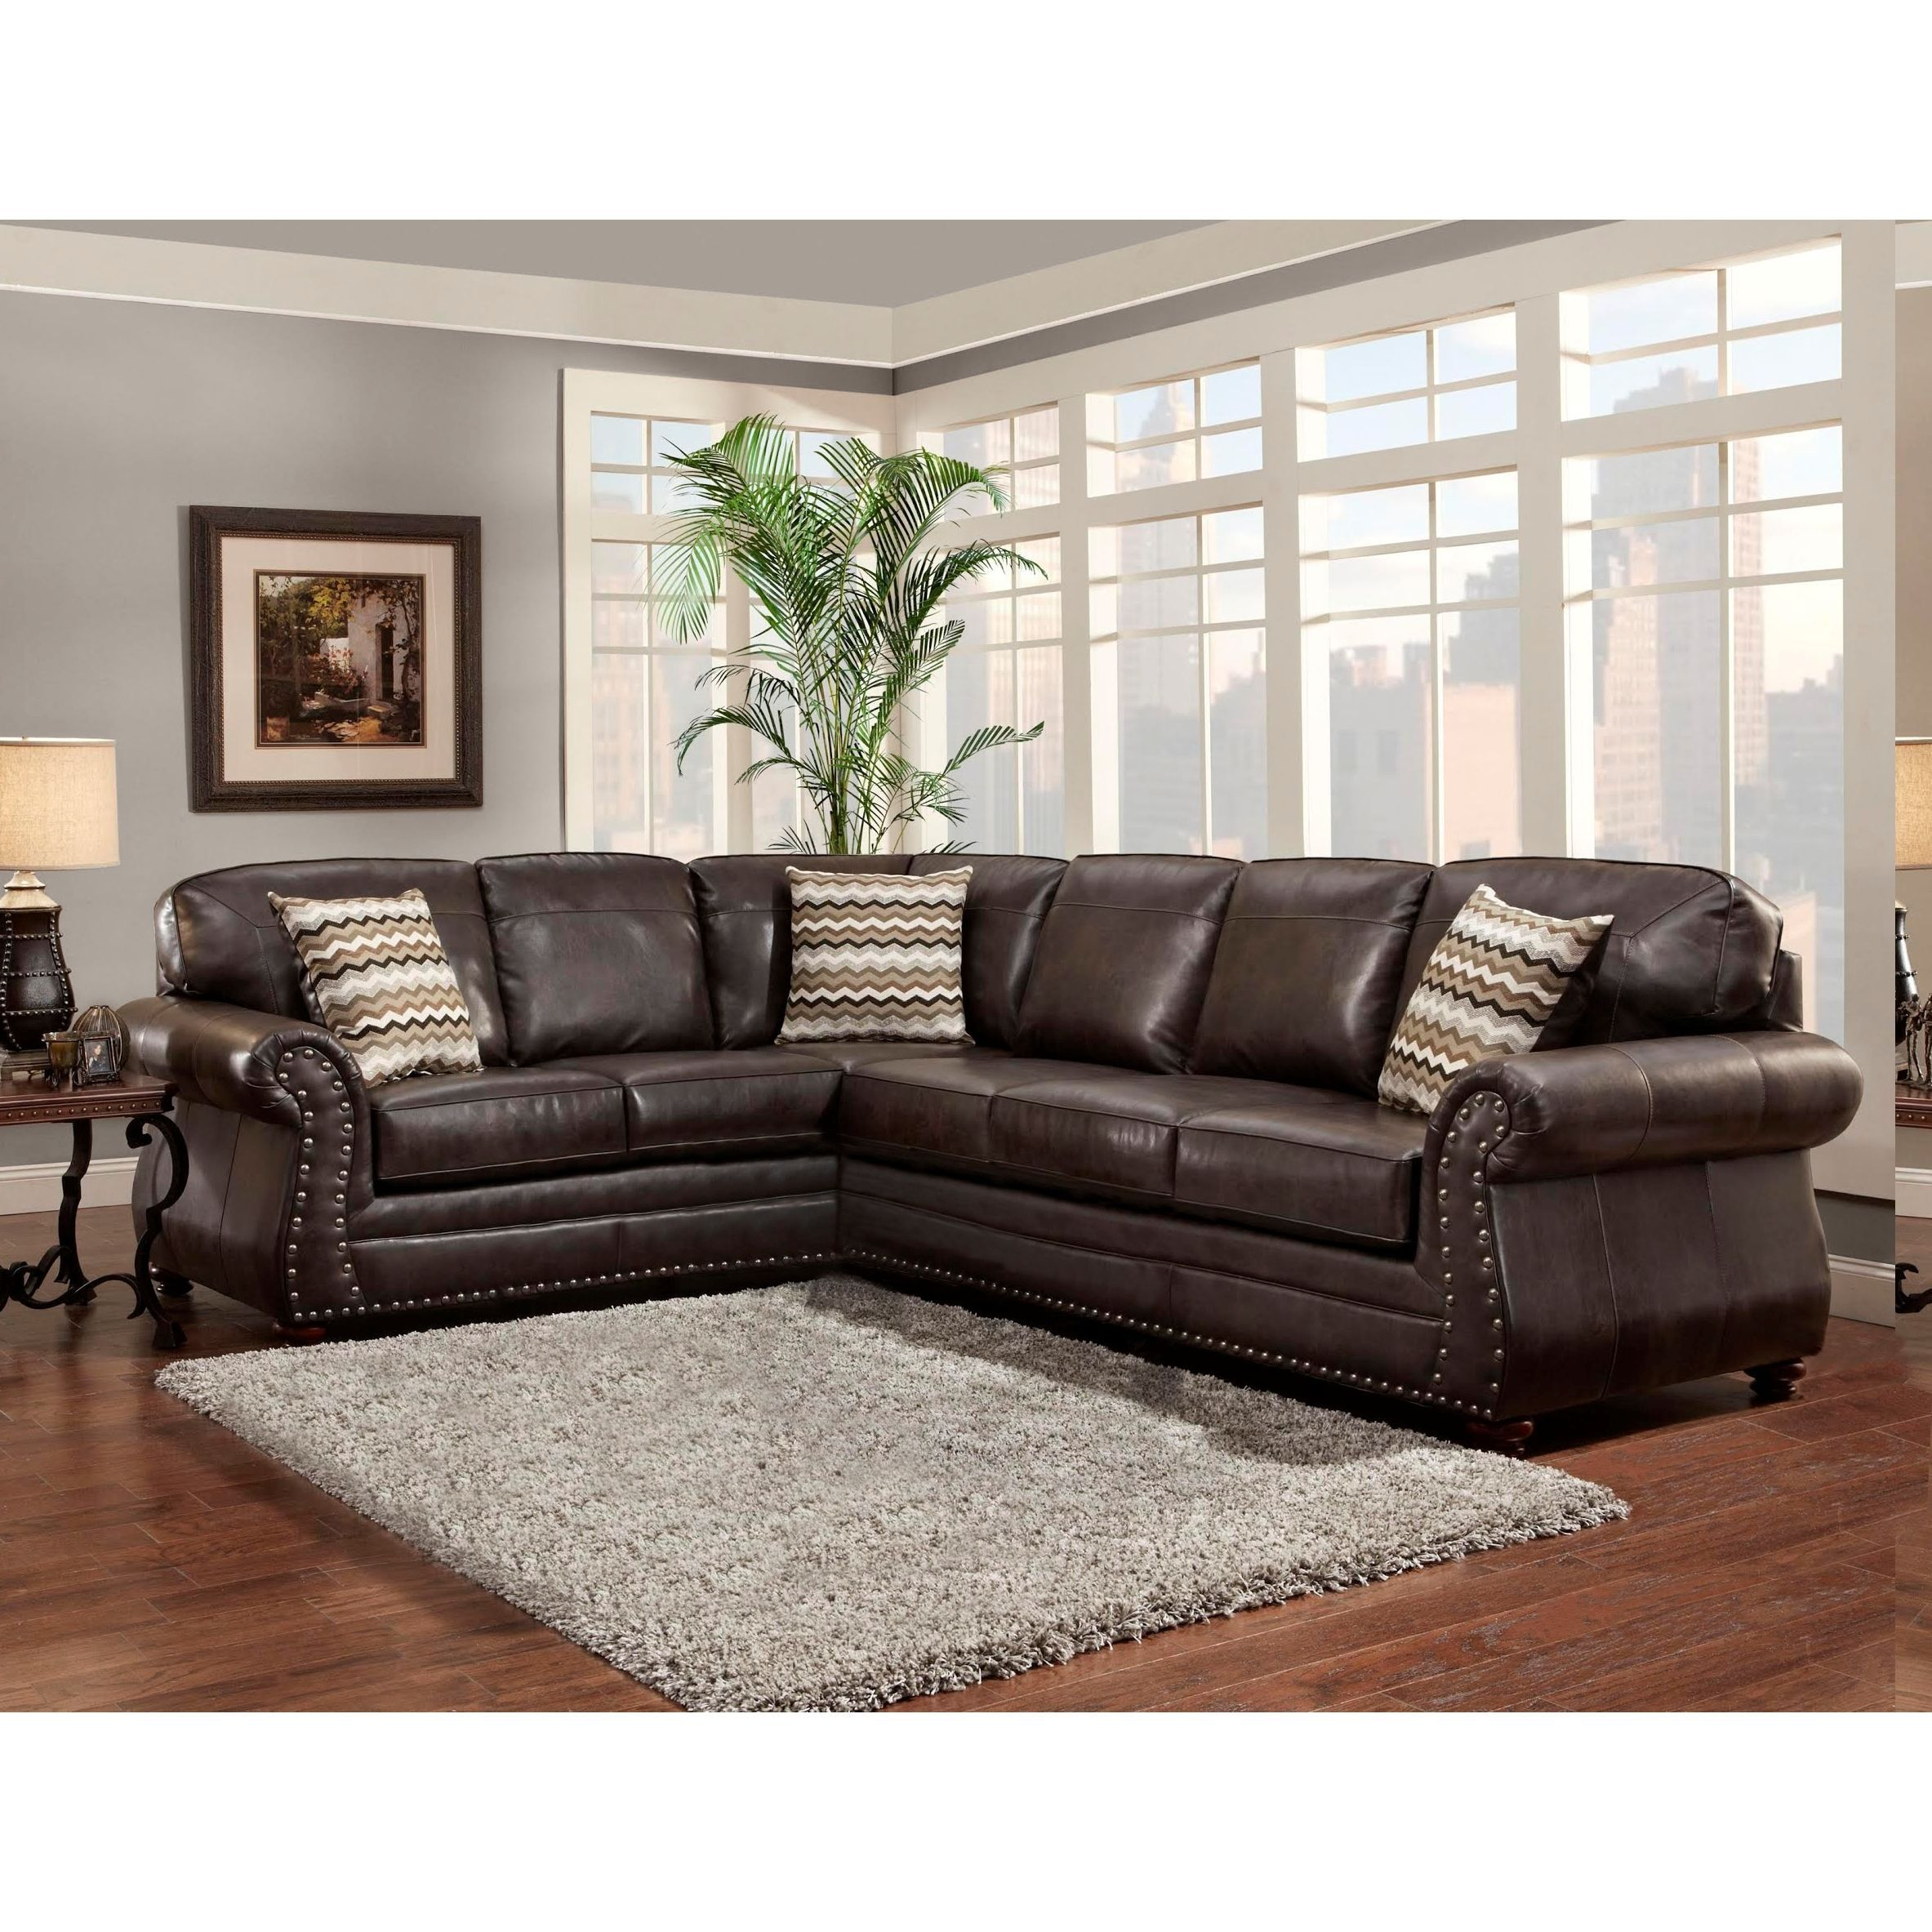 Living Room Furniture · Beige,Brown,Grey,Taupe,Leather,(,1500) Sectional  Sofas